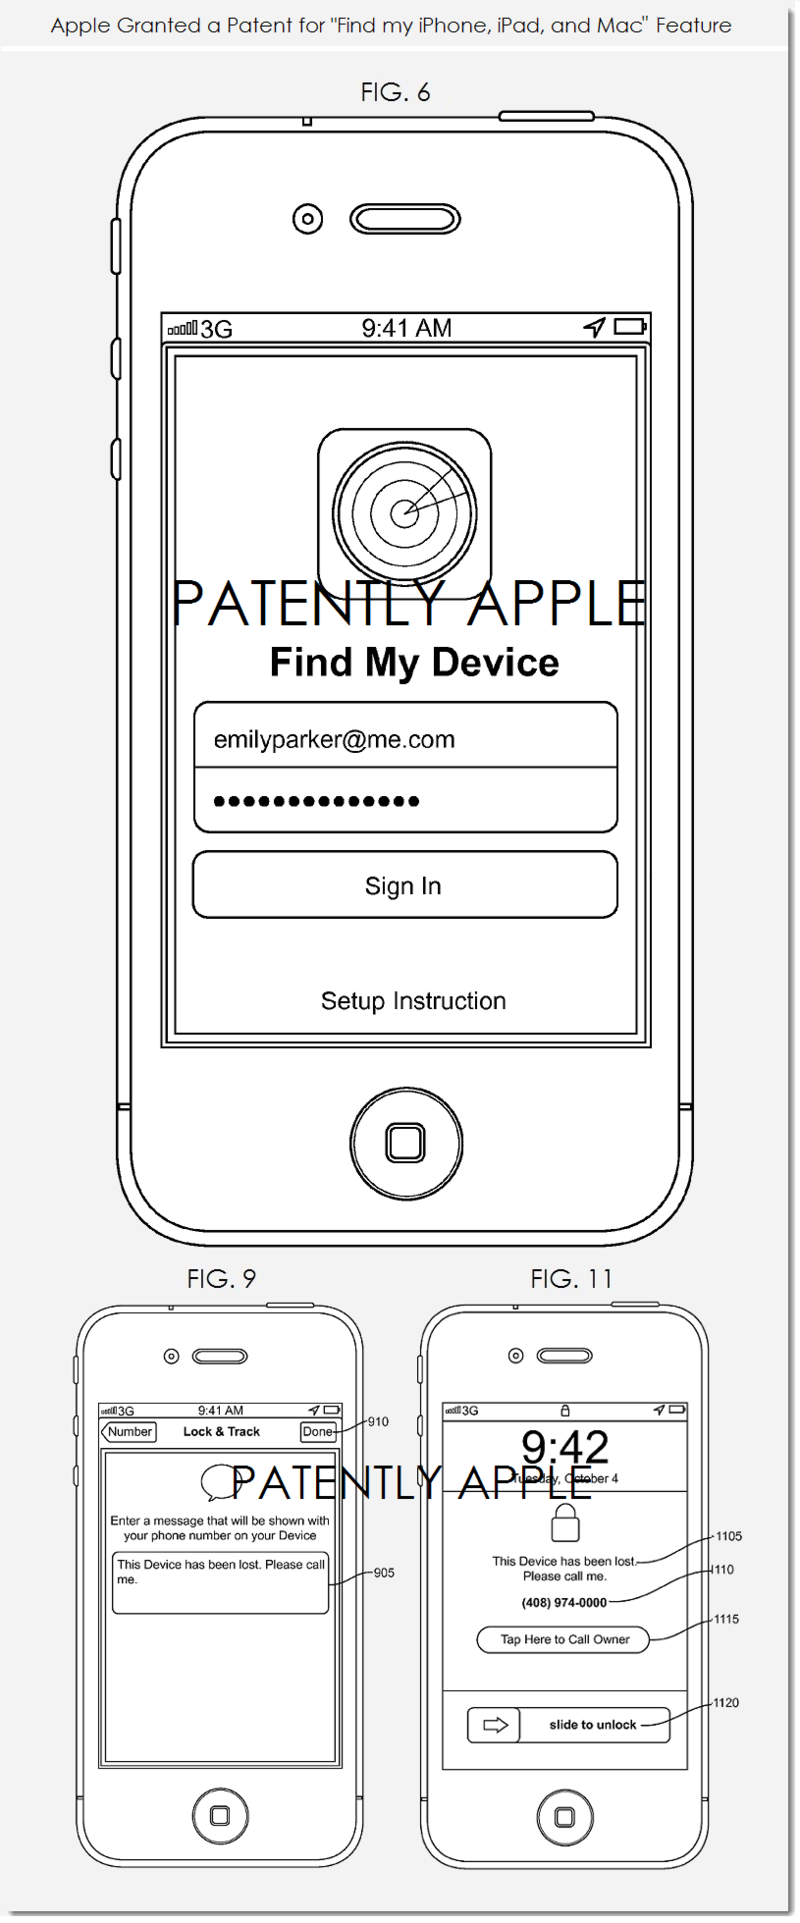 2AF2 - APPLE FIND MY IPHONE, IPAD AND MAC FEATURE GRANTED A PATENT